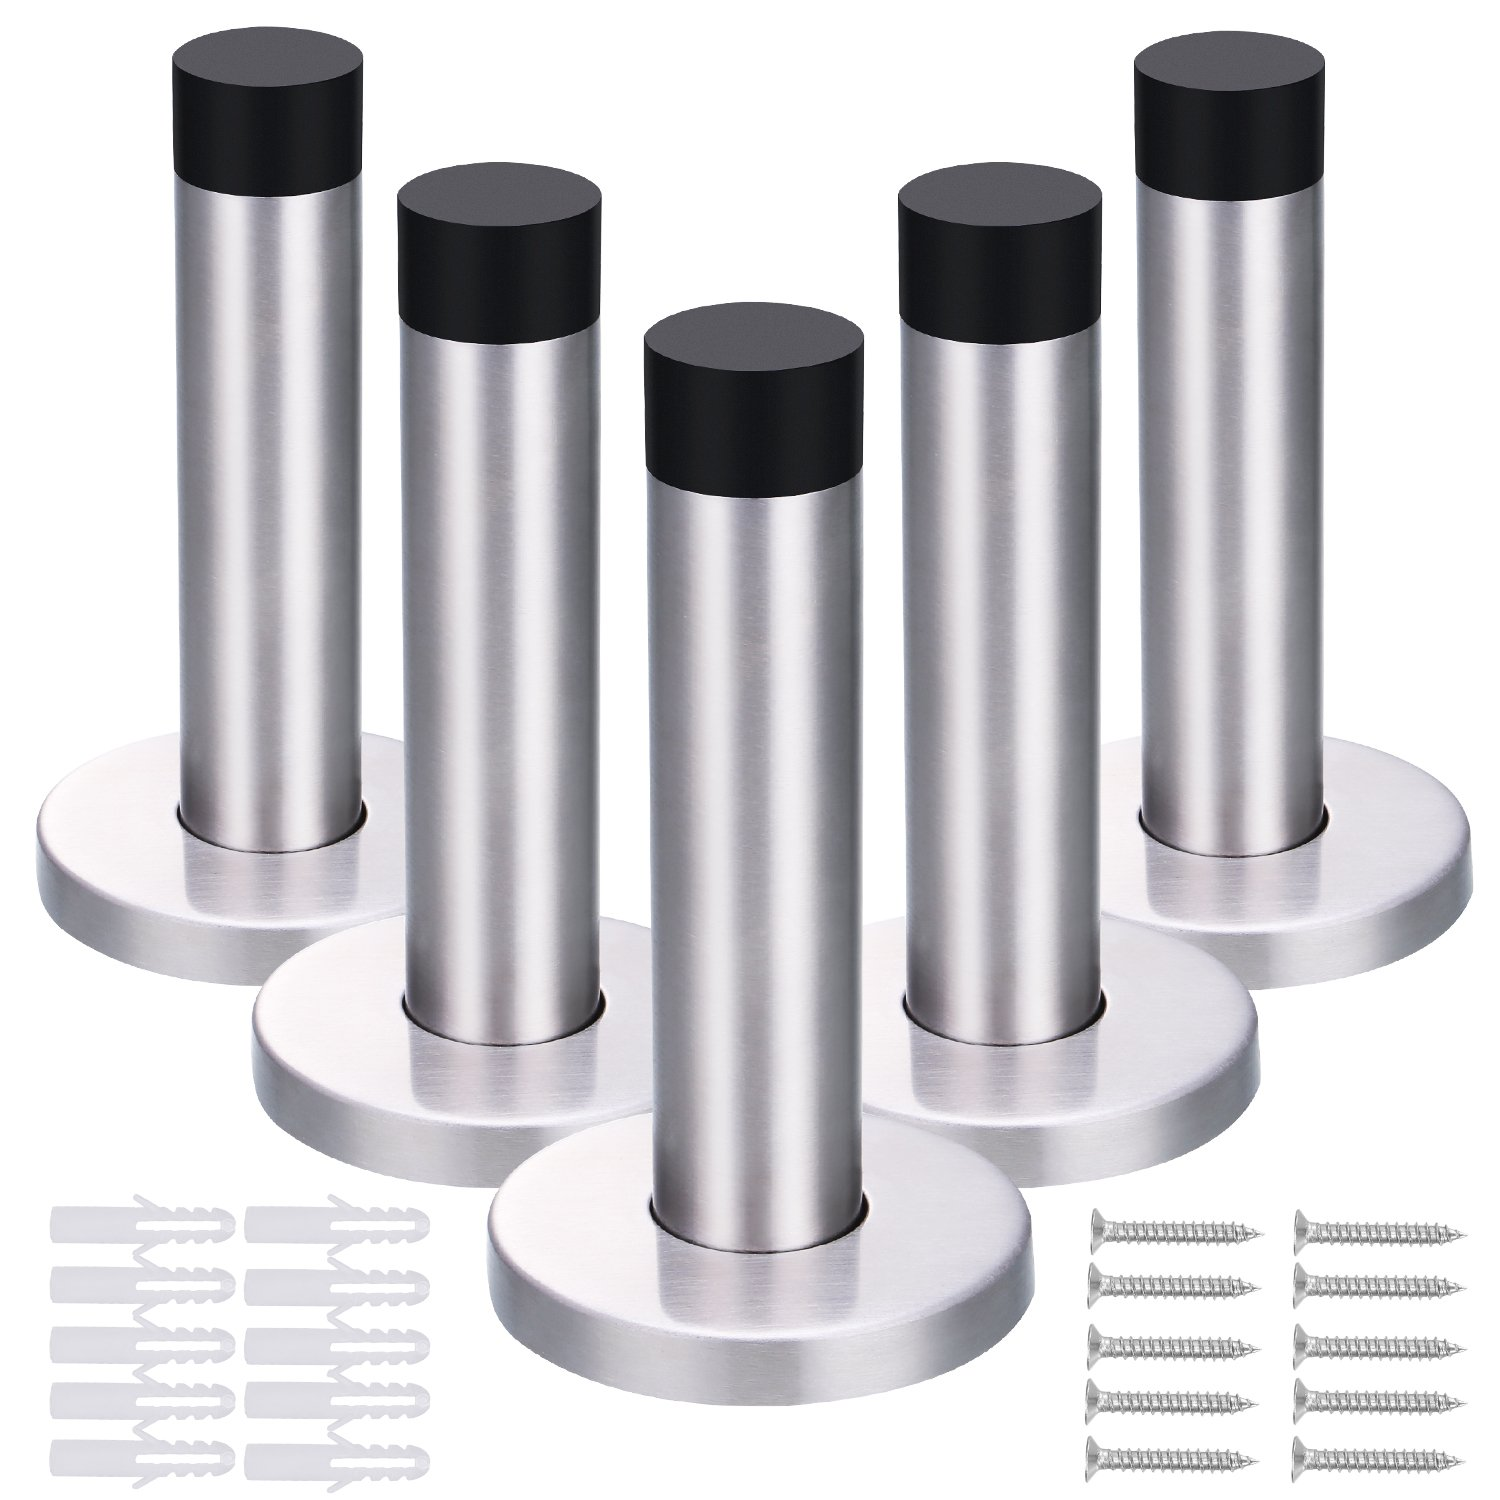 5 Pack 90 mm Door Stop Stainless Steel Door Stopper Holder with Screws and Drywall Anchors Hotop